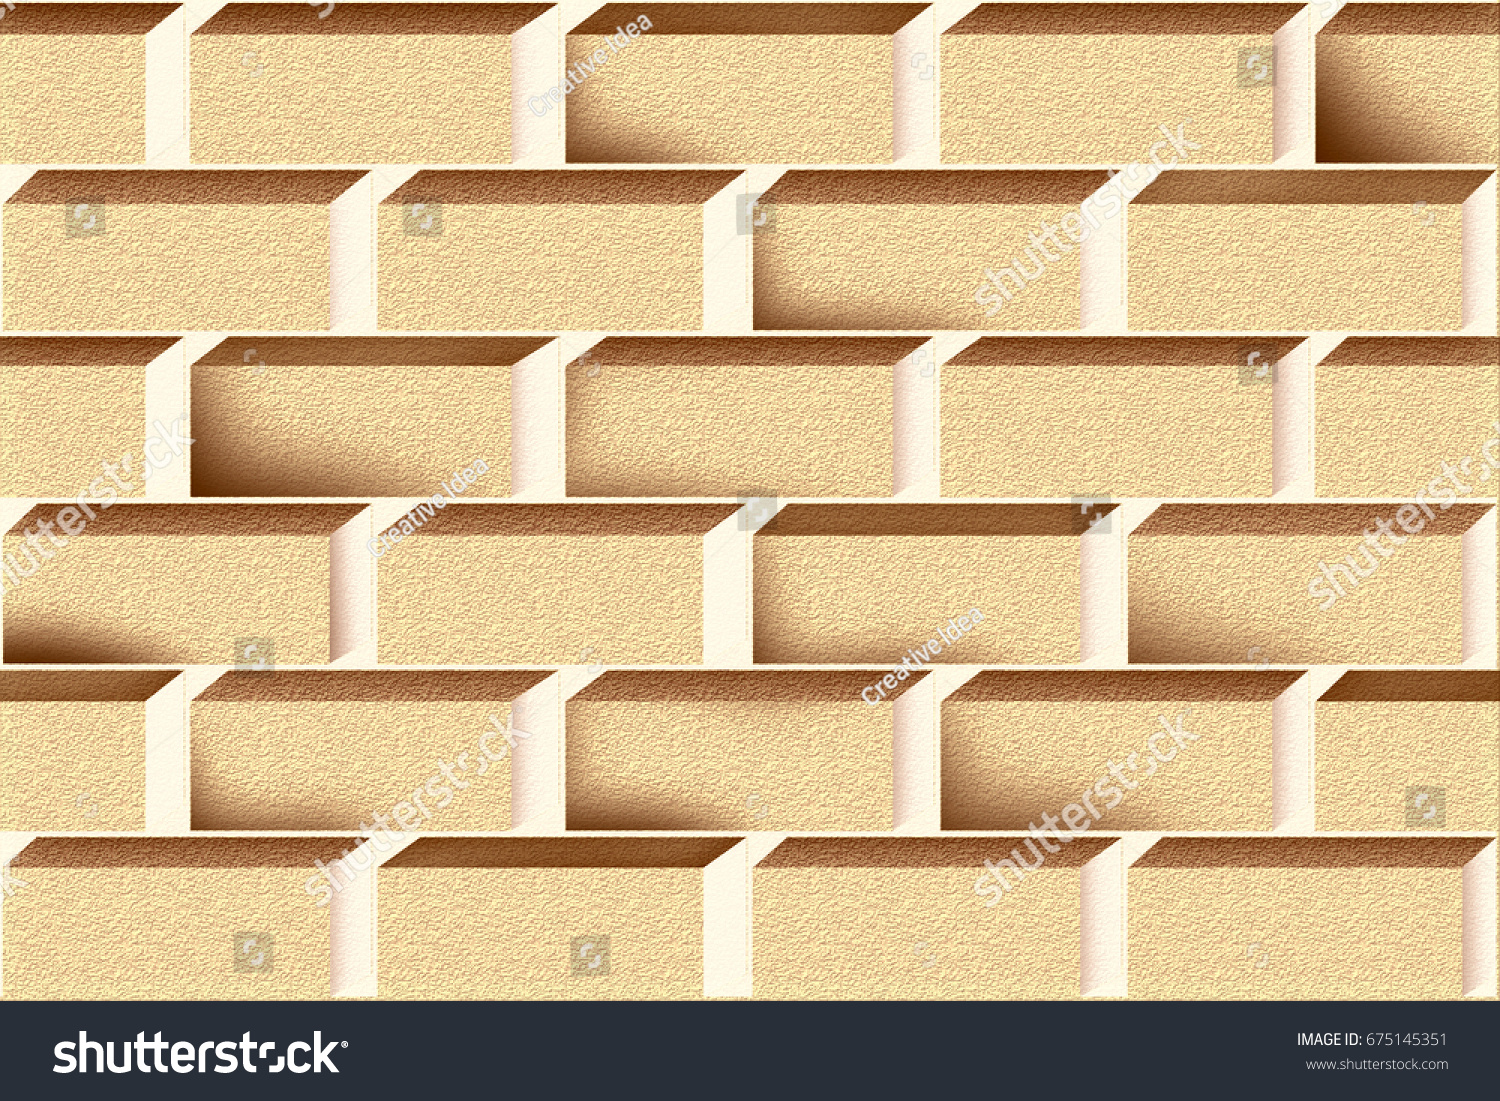 Abstract Home Decorative 3 D Marble Wall Stock Illustration ...